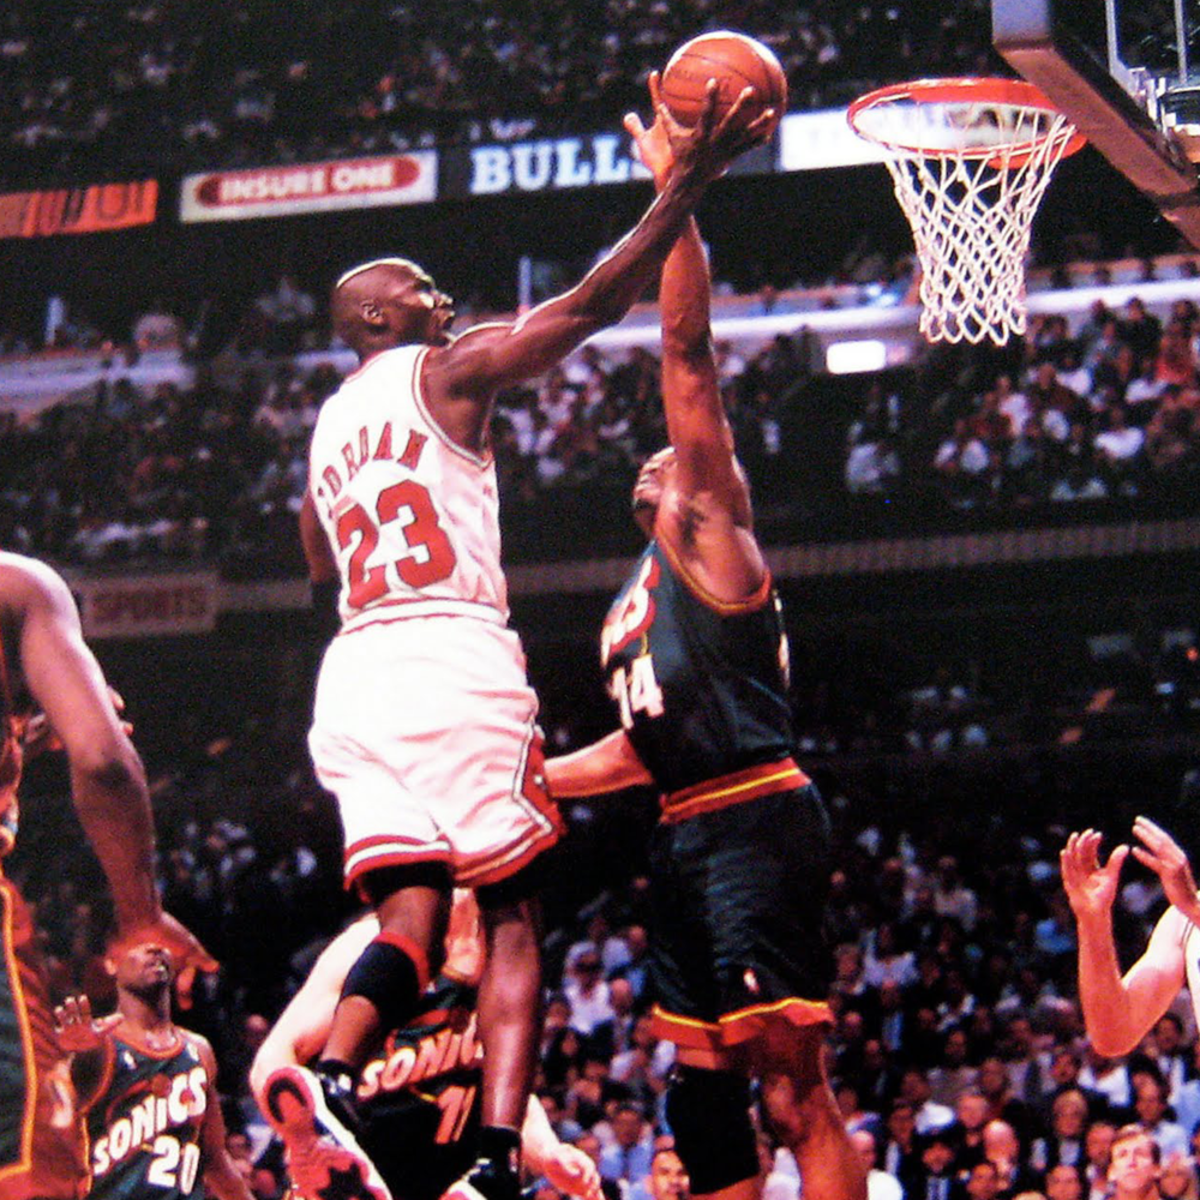 Michael Jordan can penetrate even the tightest defense to score particularly during crunch time.